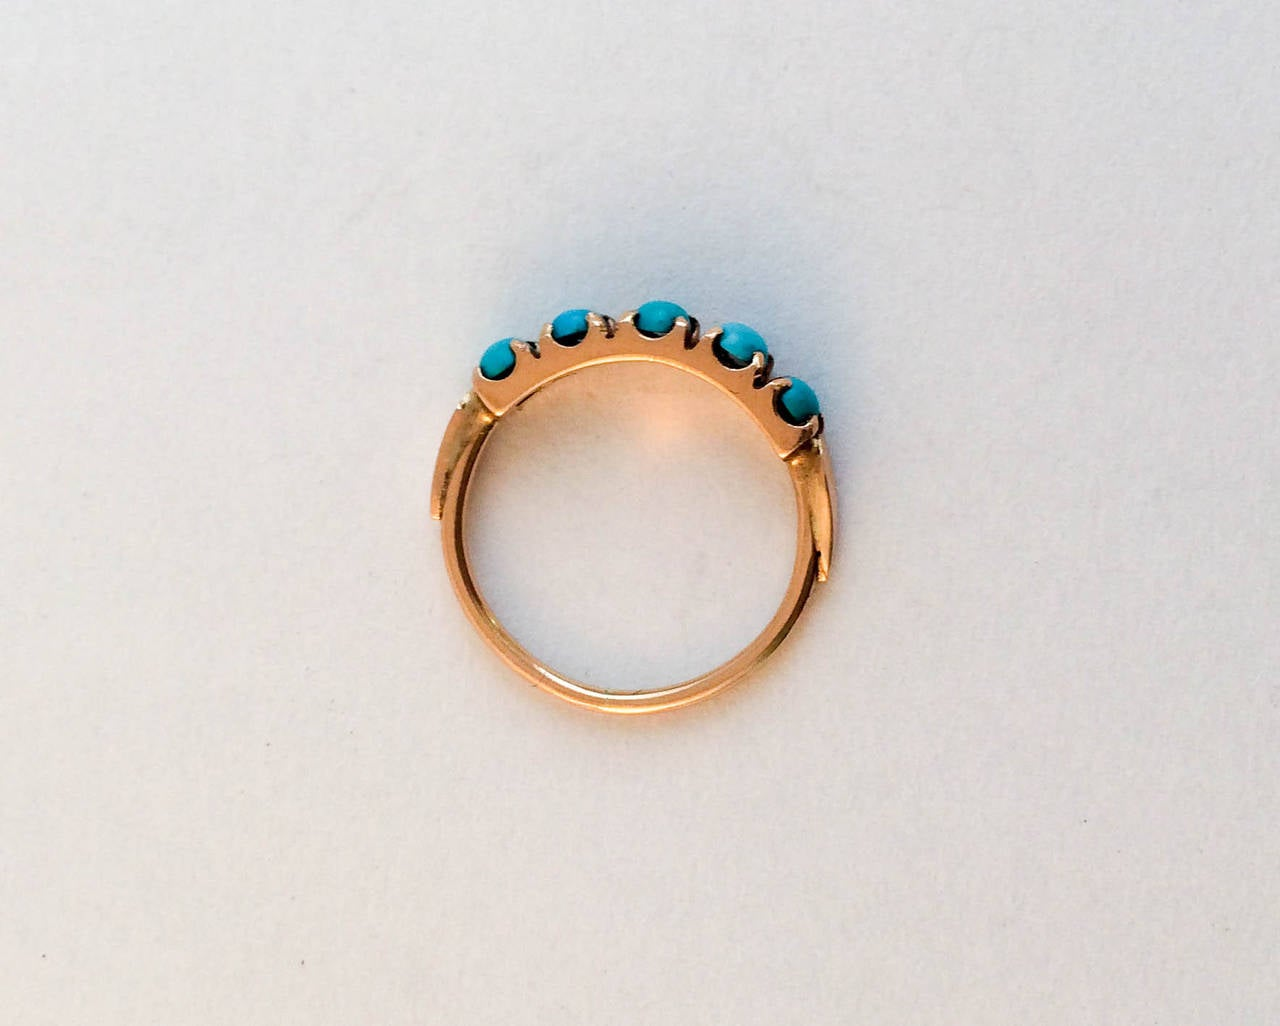 Turquoise Ring - 1960s 2